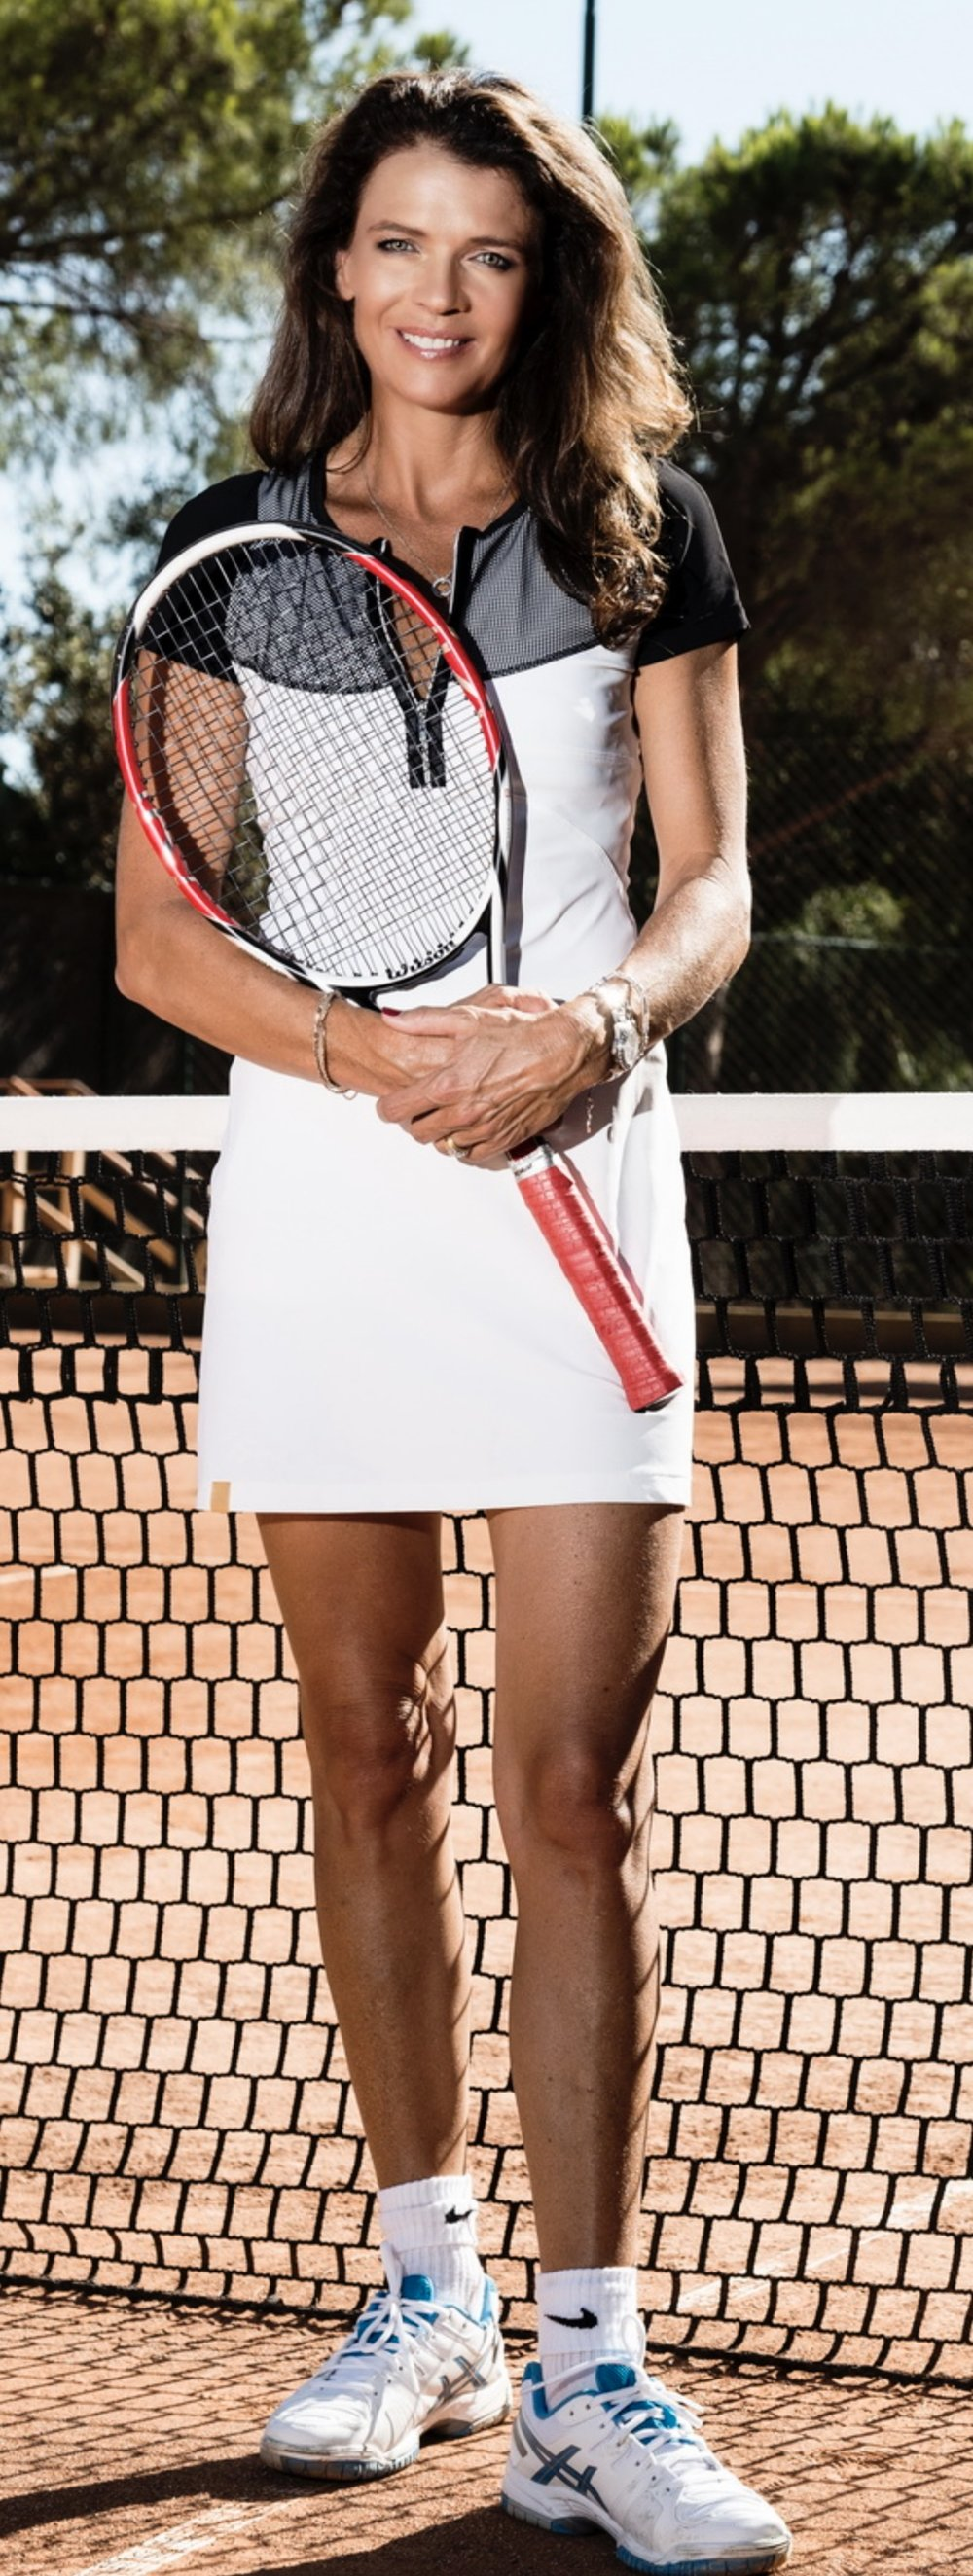 Annabel_Croft_Tennis_2.jpg